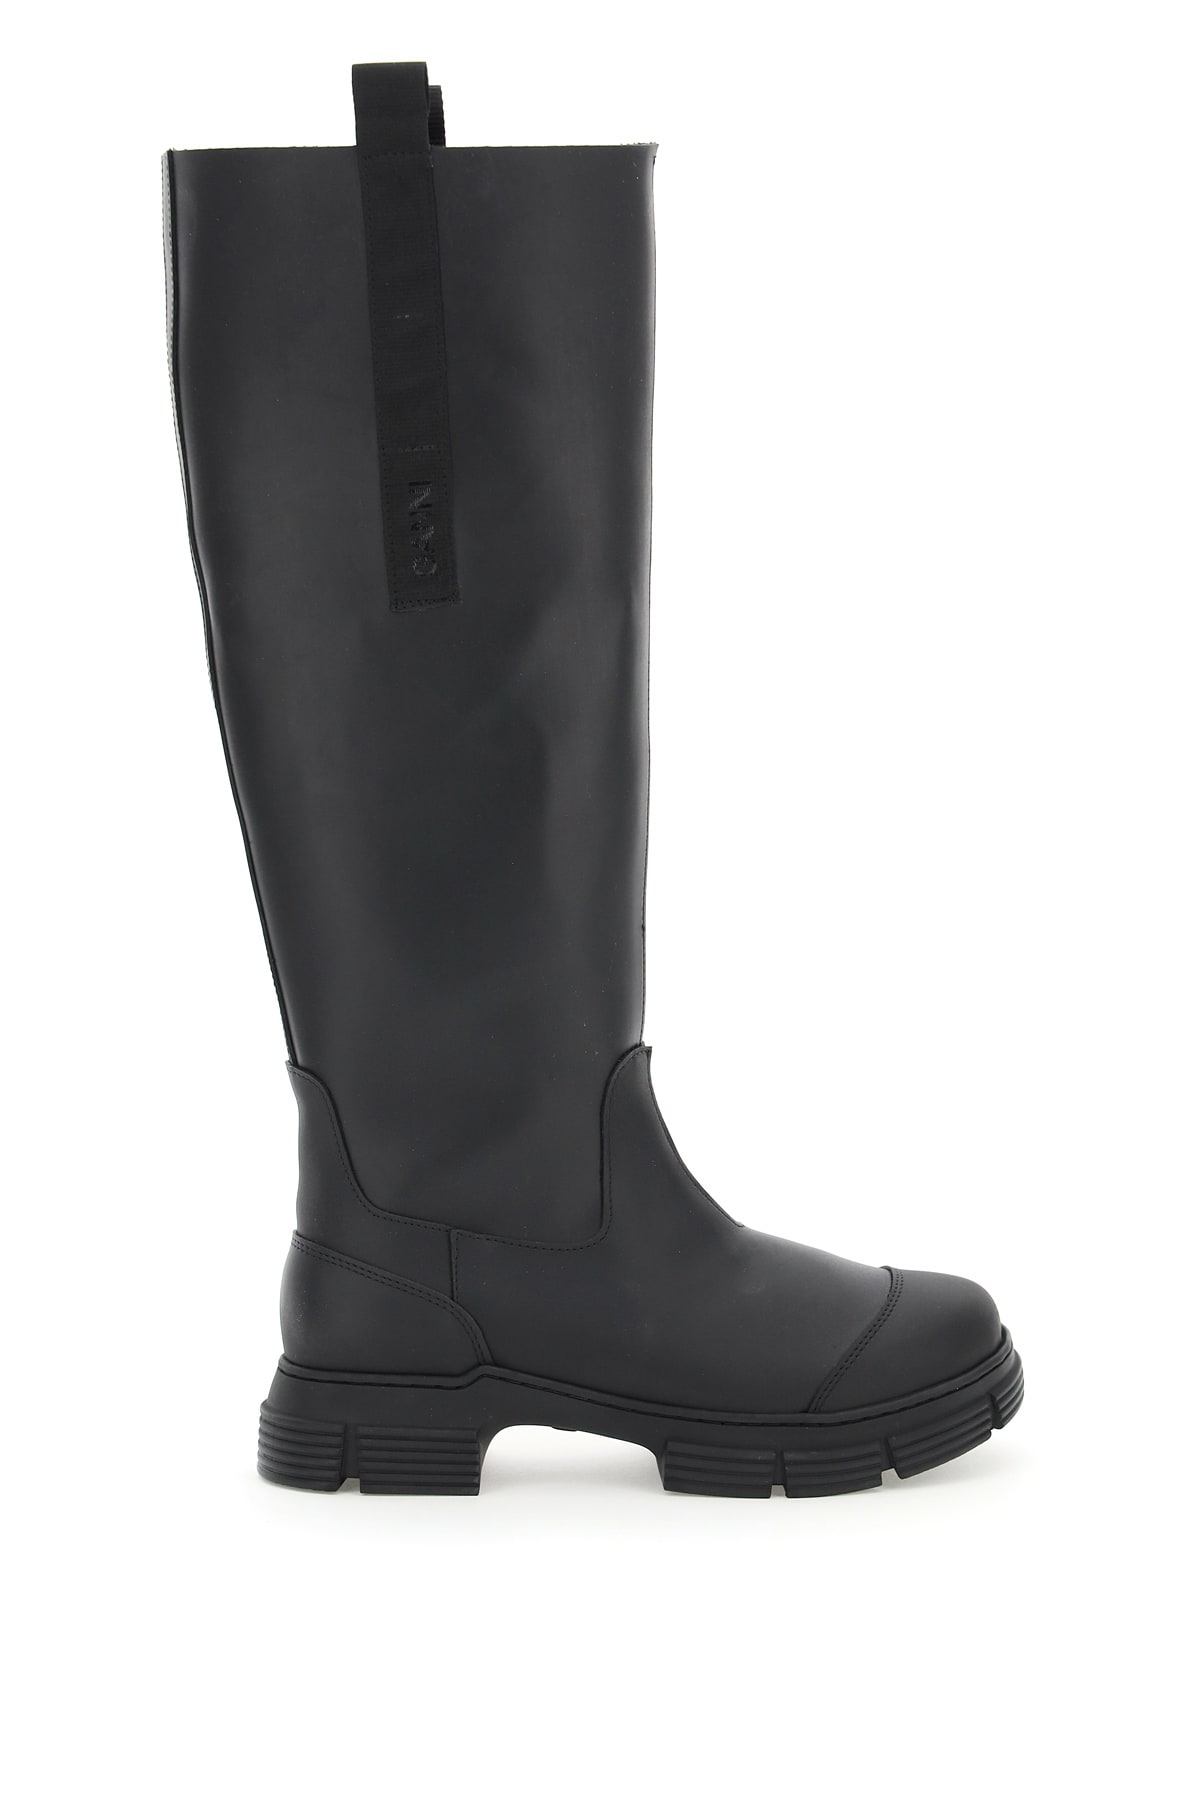 Ganni Leathers RECYCLED RUBBER BOOTS